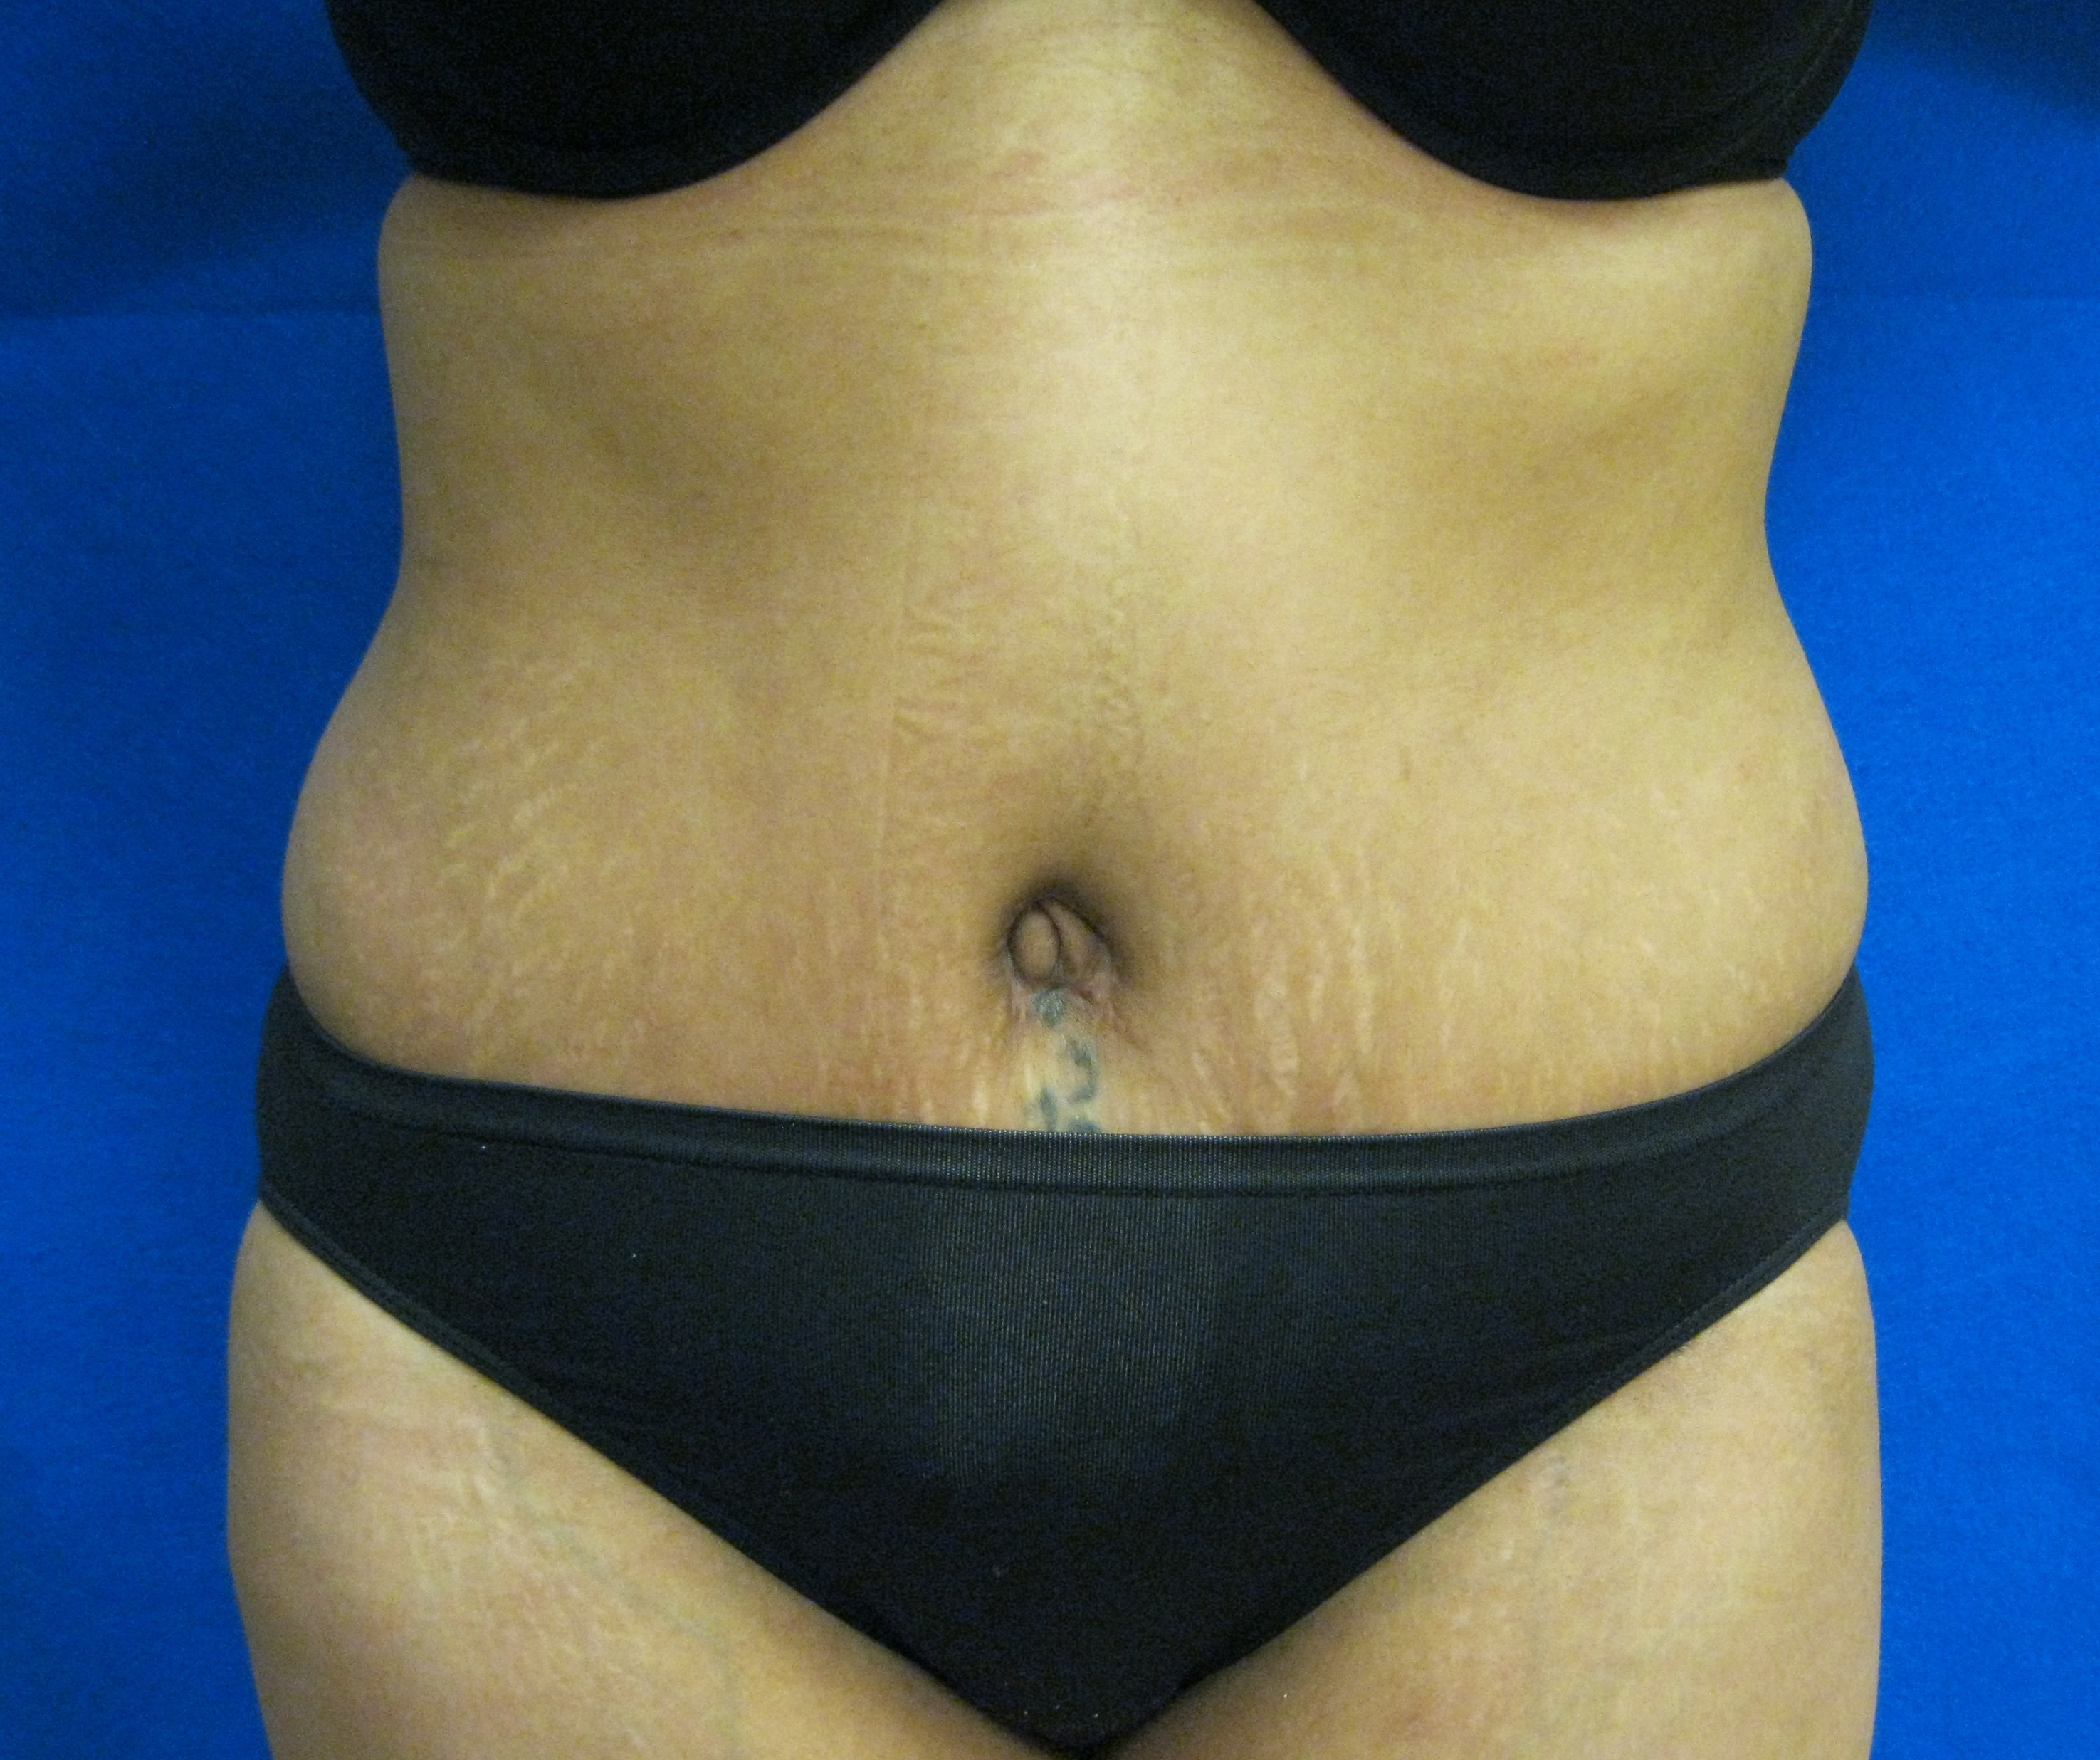 Tummy tuck liposuction Fairfield Westport Bridgeport Connecticut Jandali Plastic Surgery